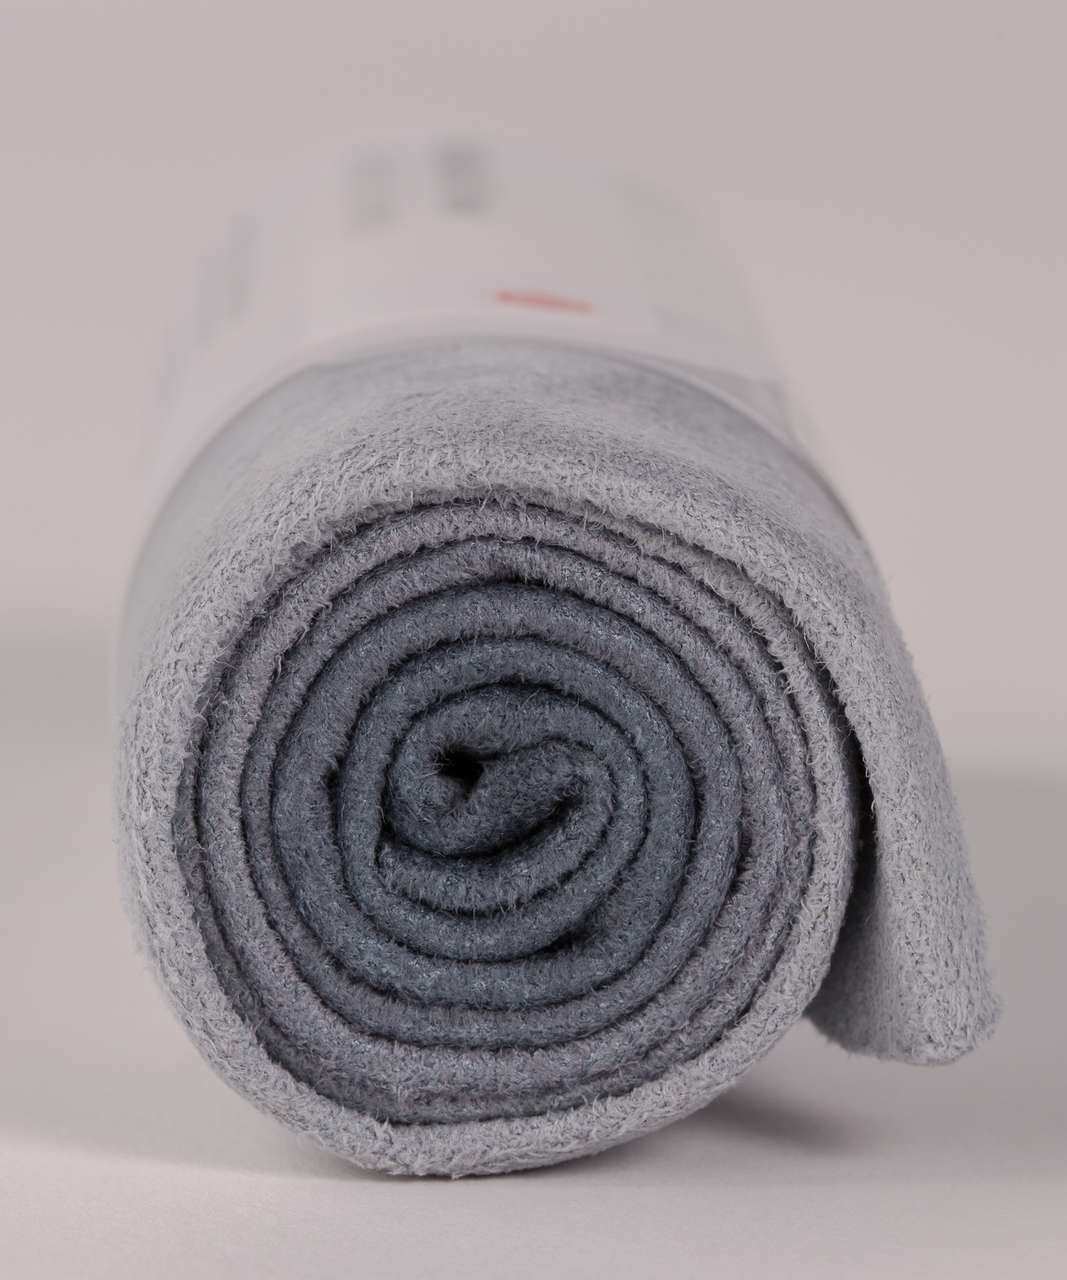 Lululemon The (Small) Towel - Hail Black Gradient